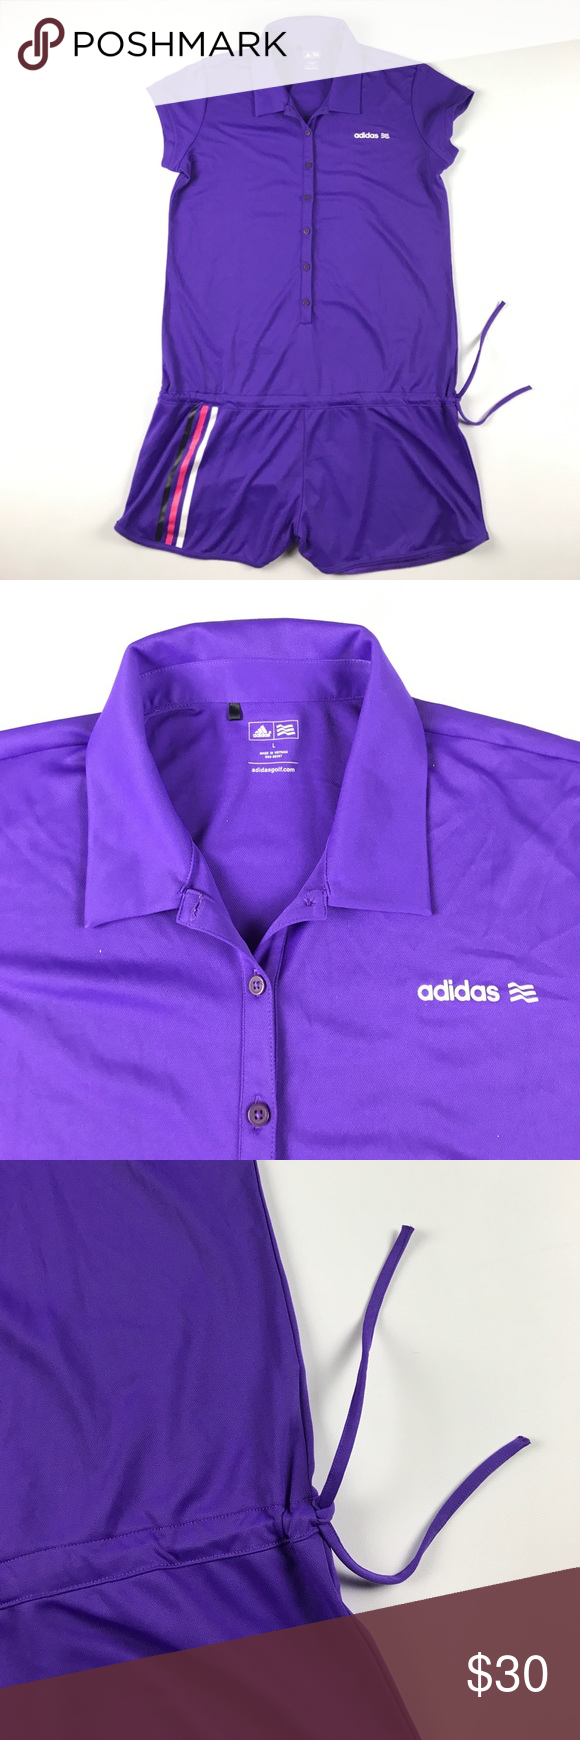 6cf7f56964e Large Adidas Golf Romper Suit Purple Polyester Measures 20 inches side to  side and 34 inches